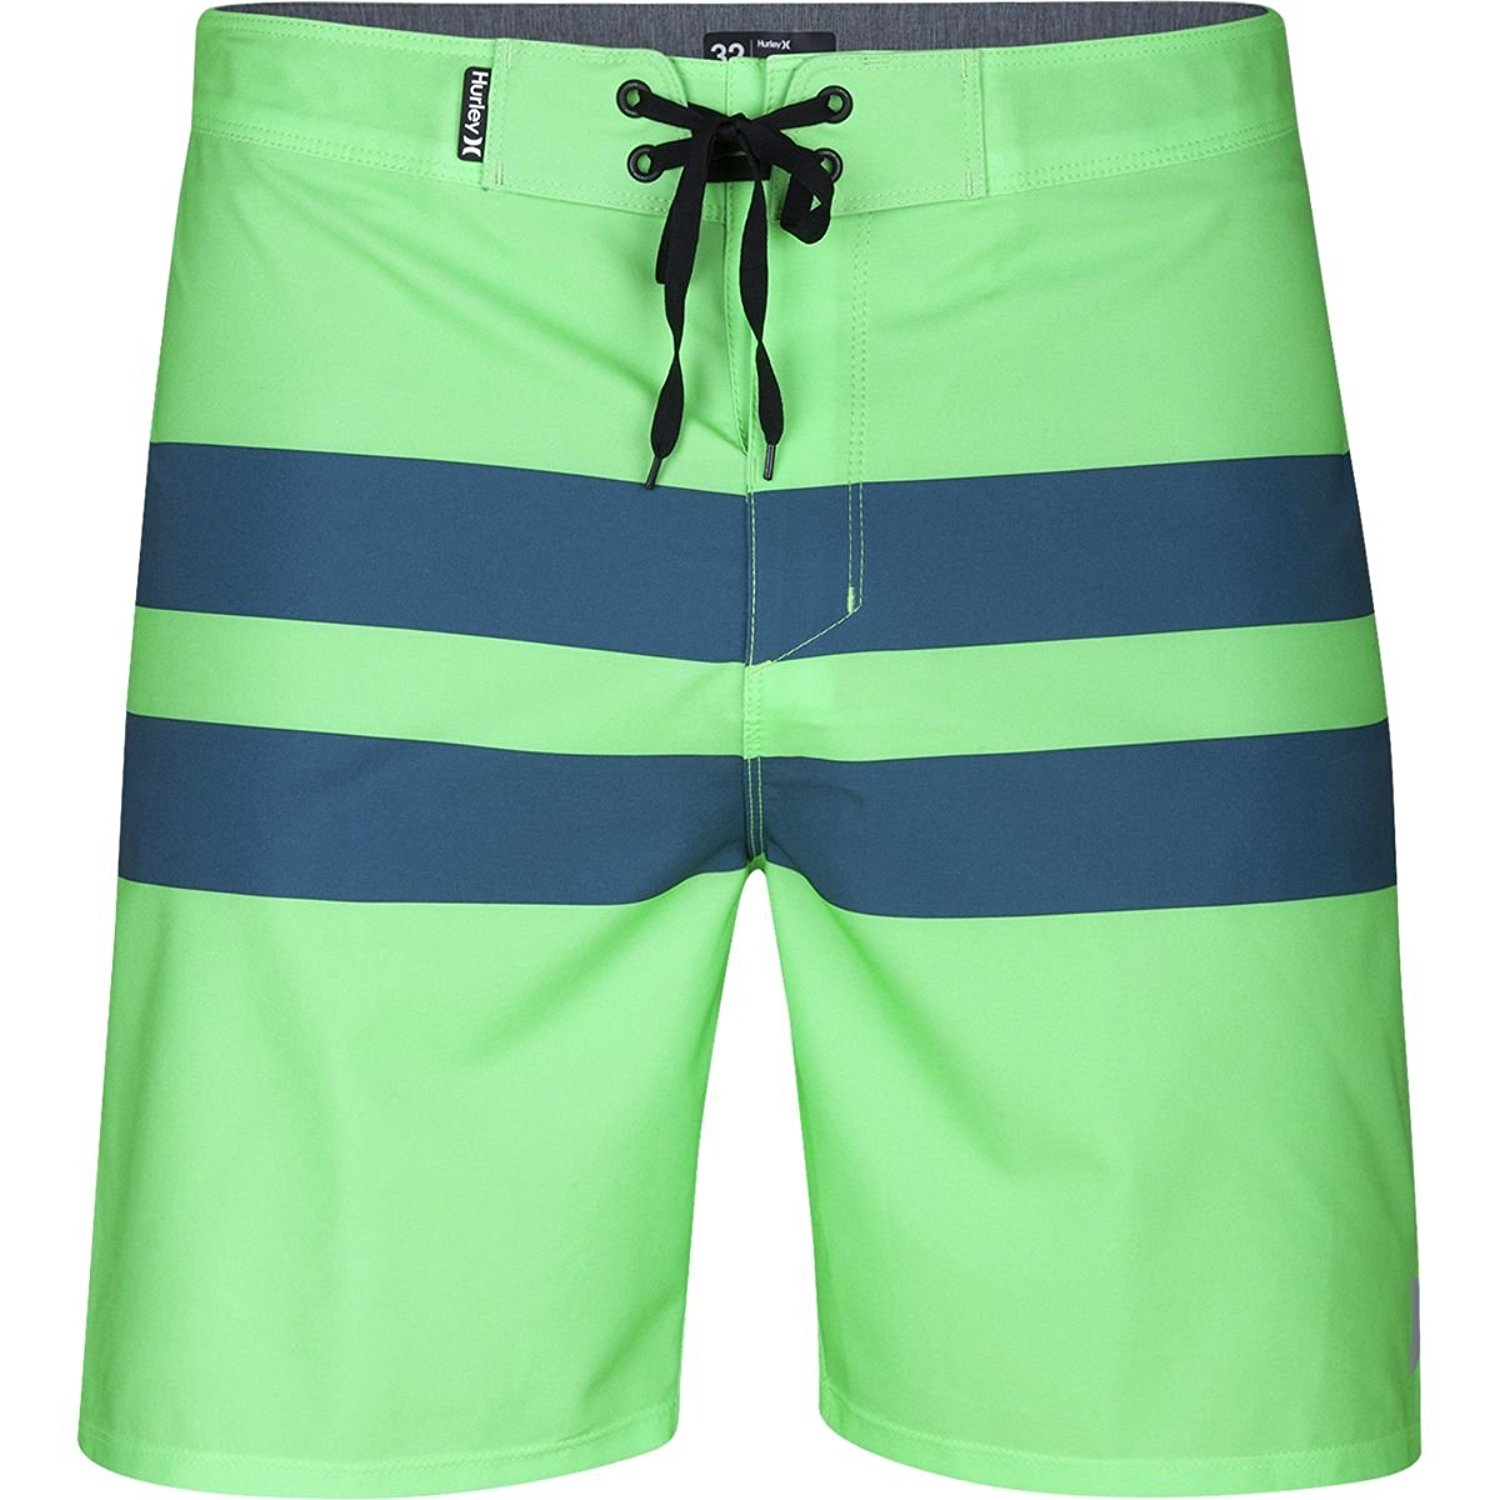 On Deals Hurley At Cheap Mens HurleyFind Line N80wnvm